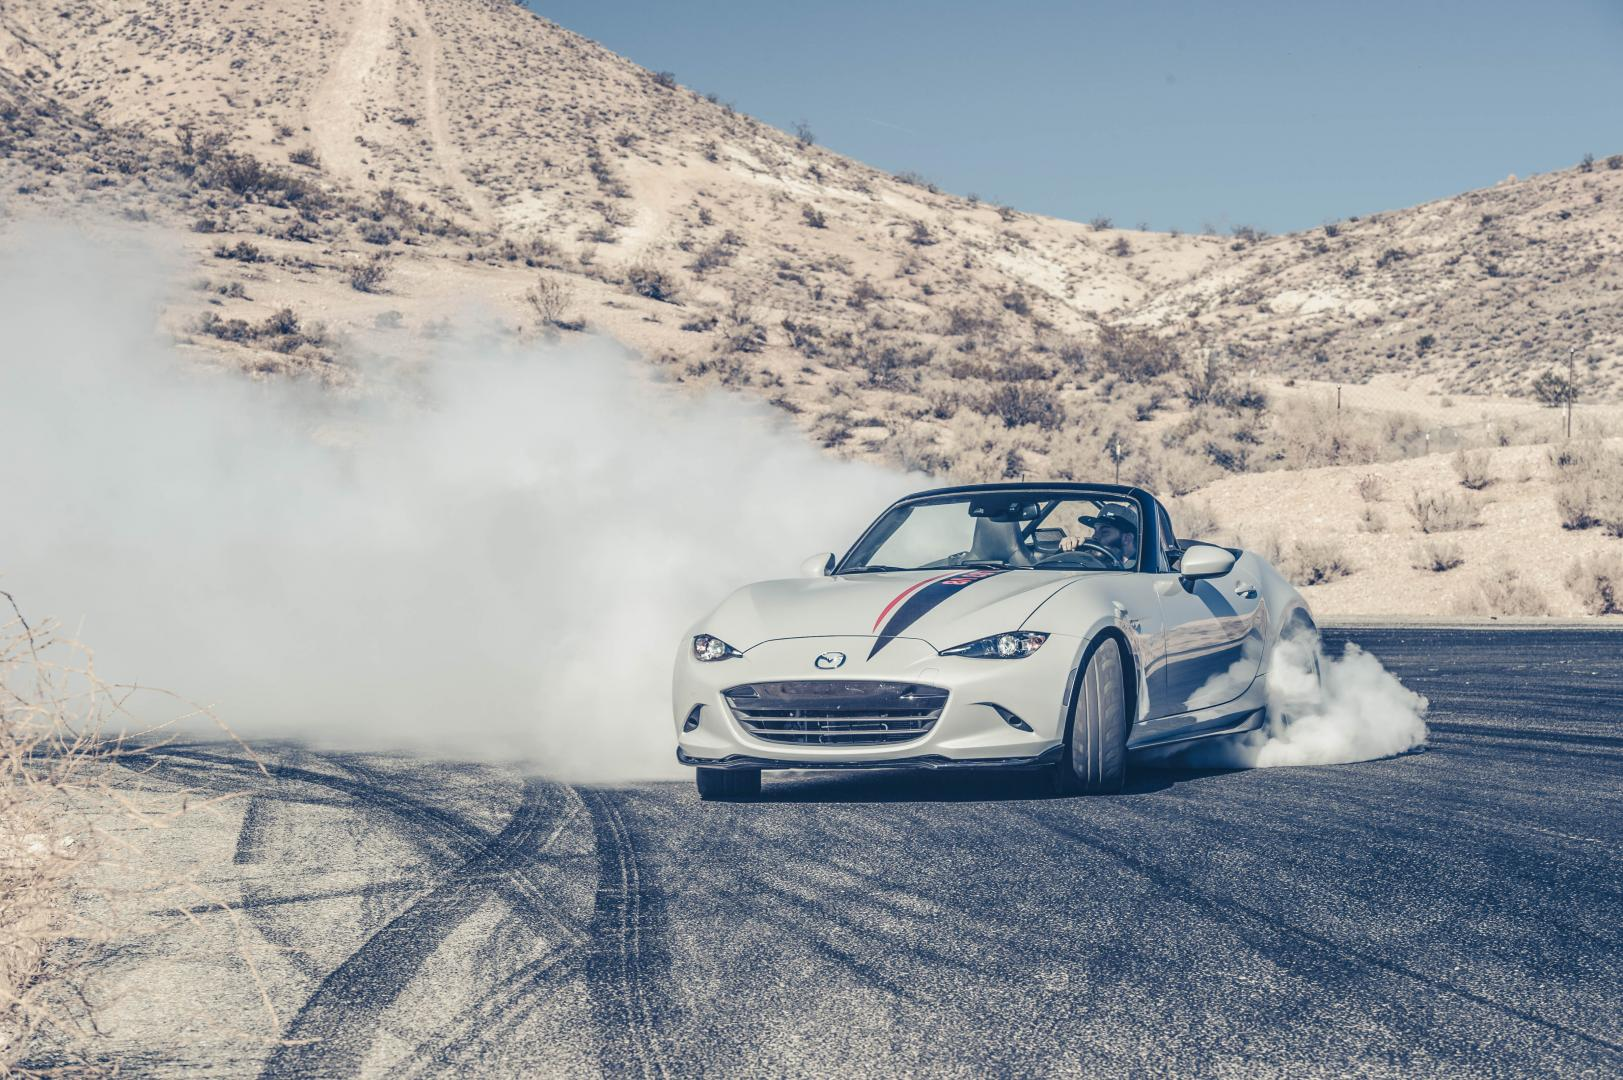 mazda mx-5 bucketlist item 2017